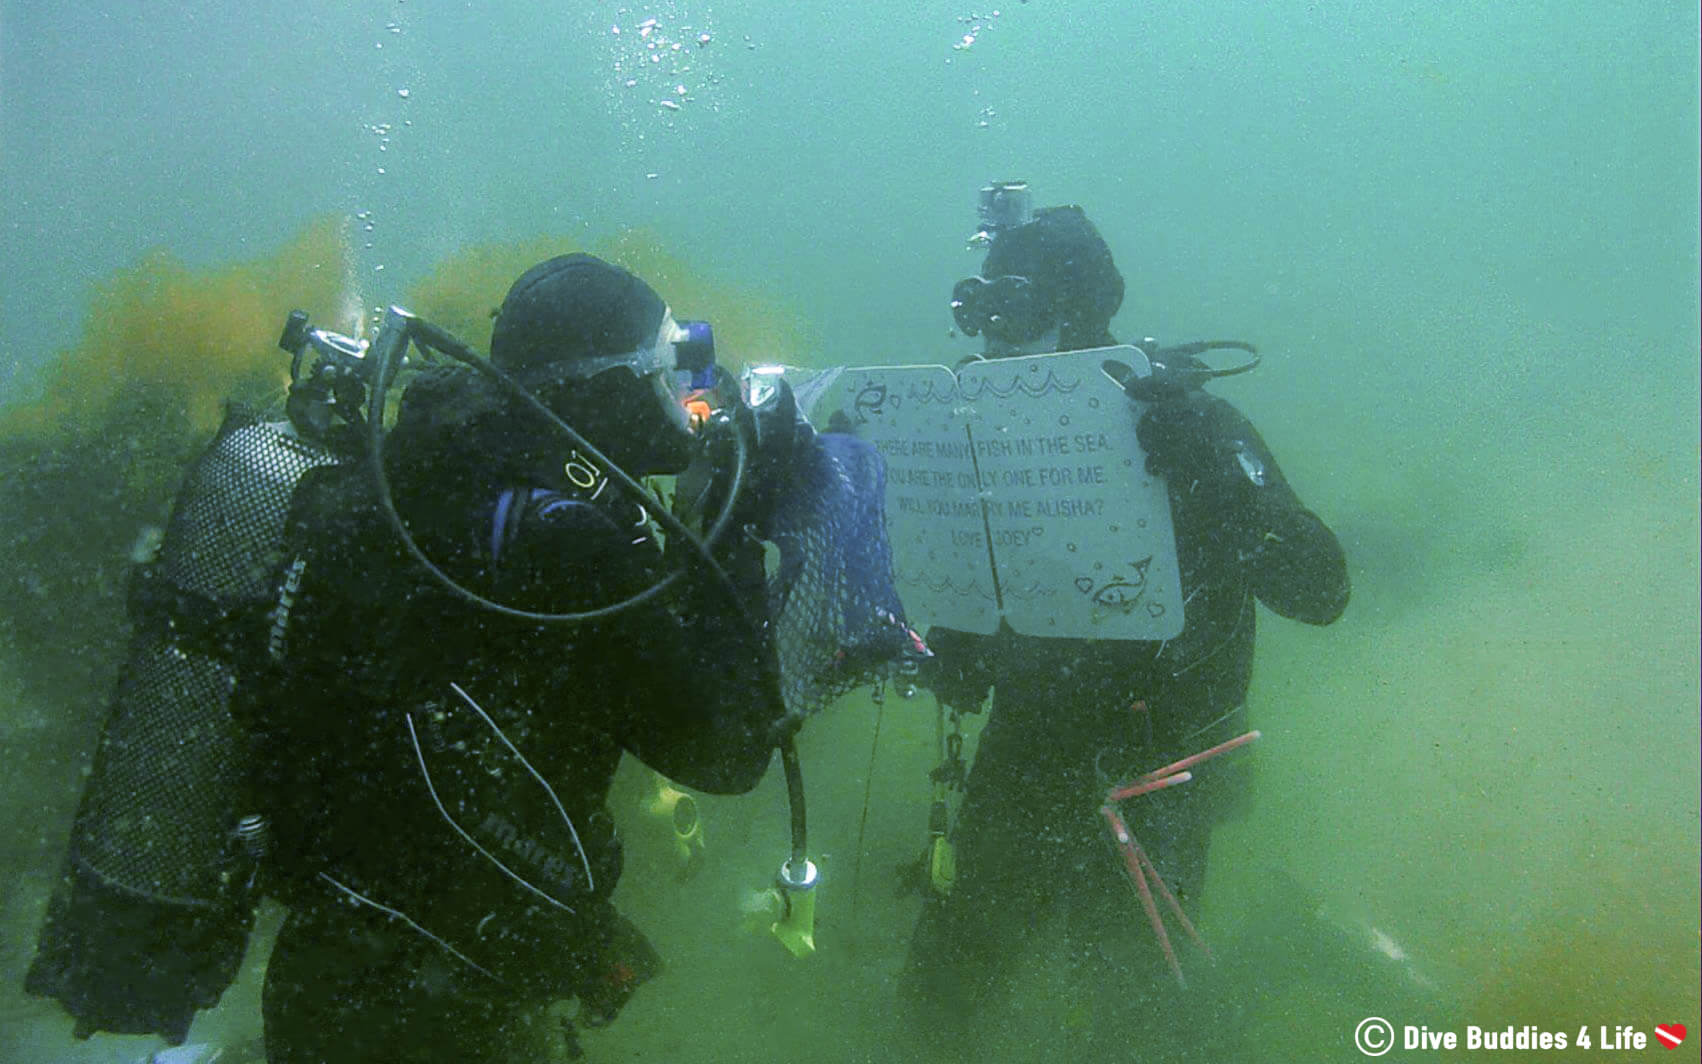 Scuba Joey Proposing To Mermaid Ali Underwater While Scuba Diving In Halifax